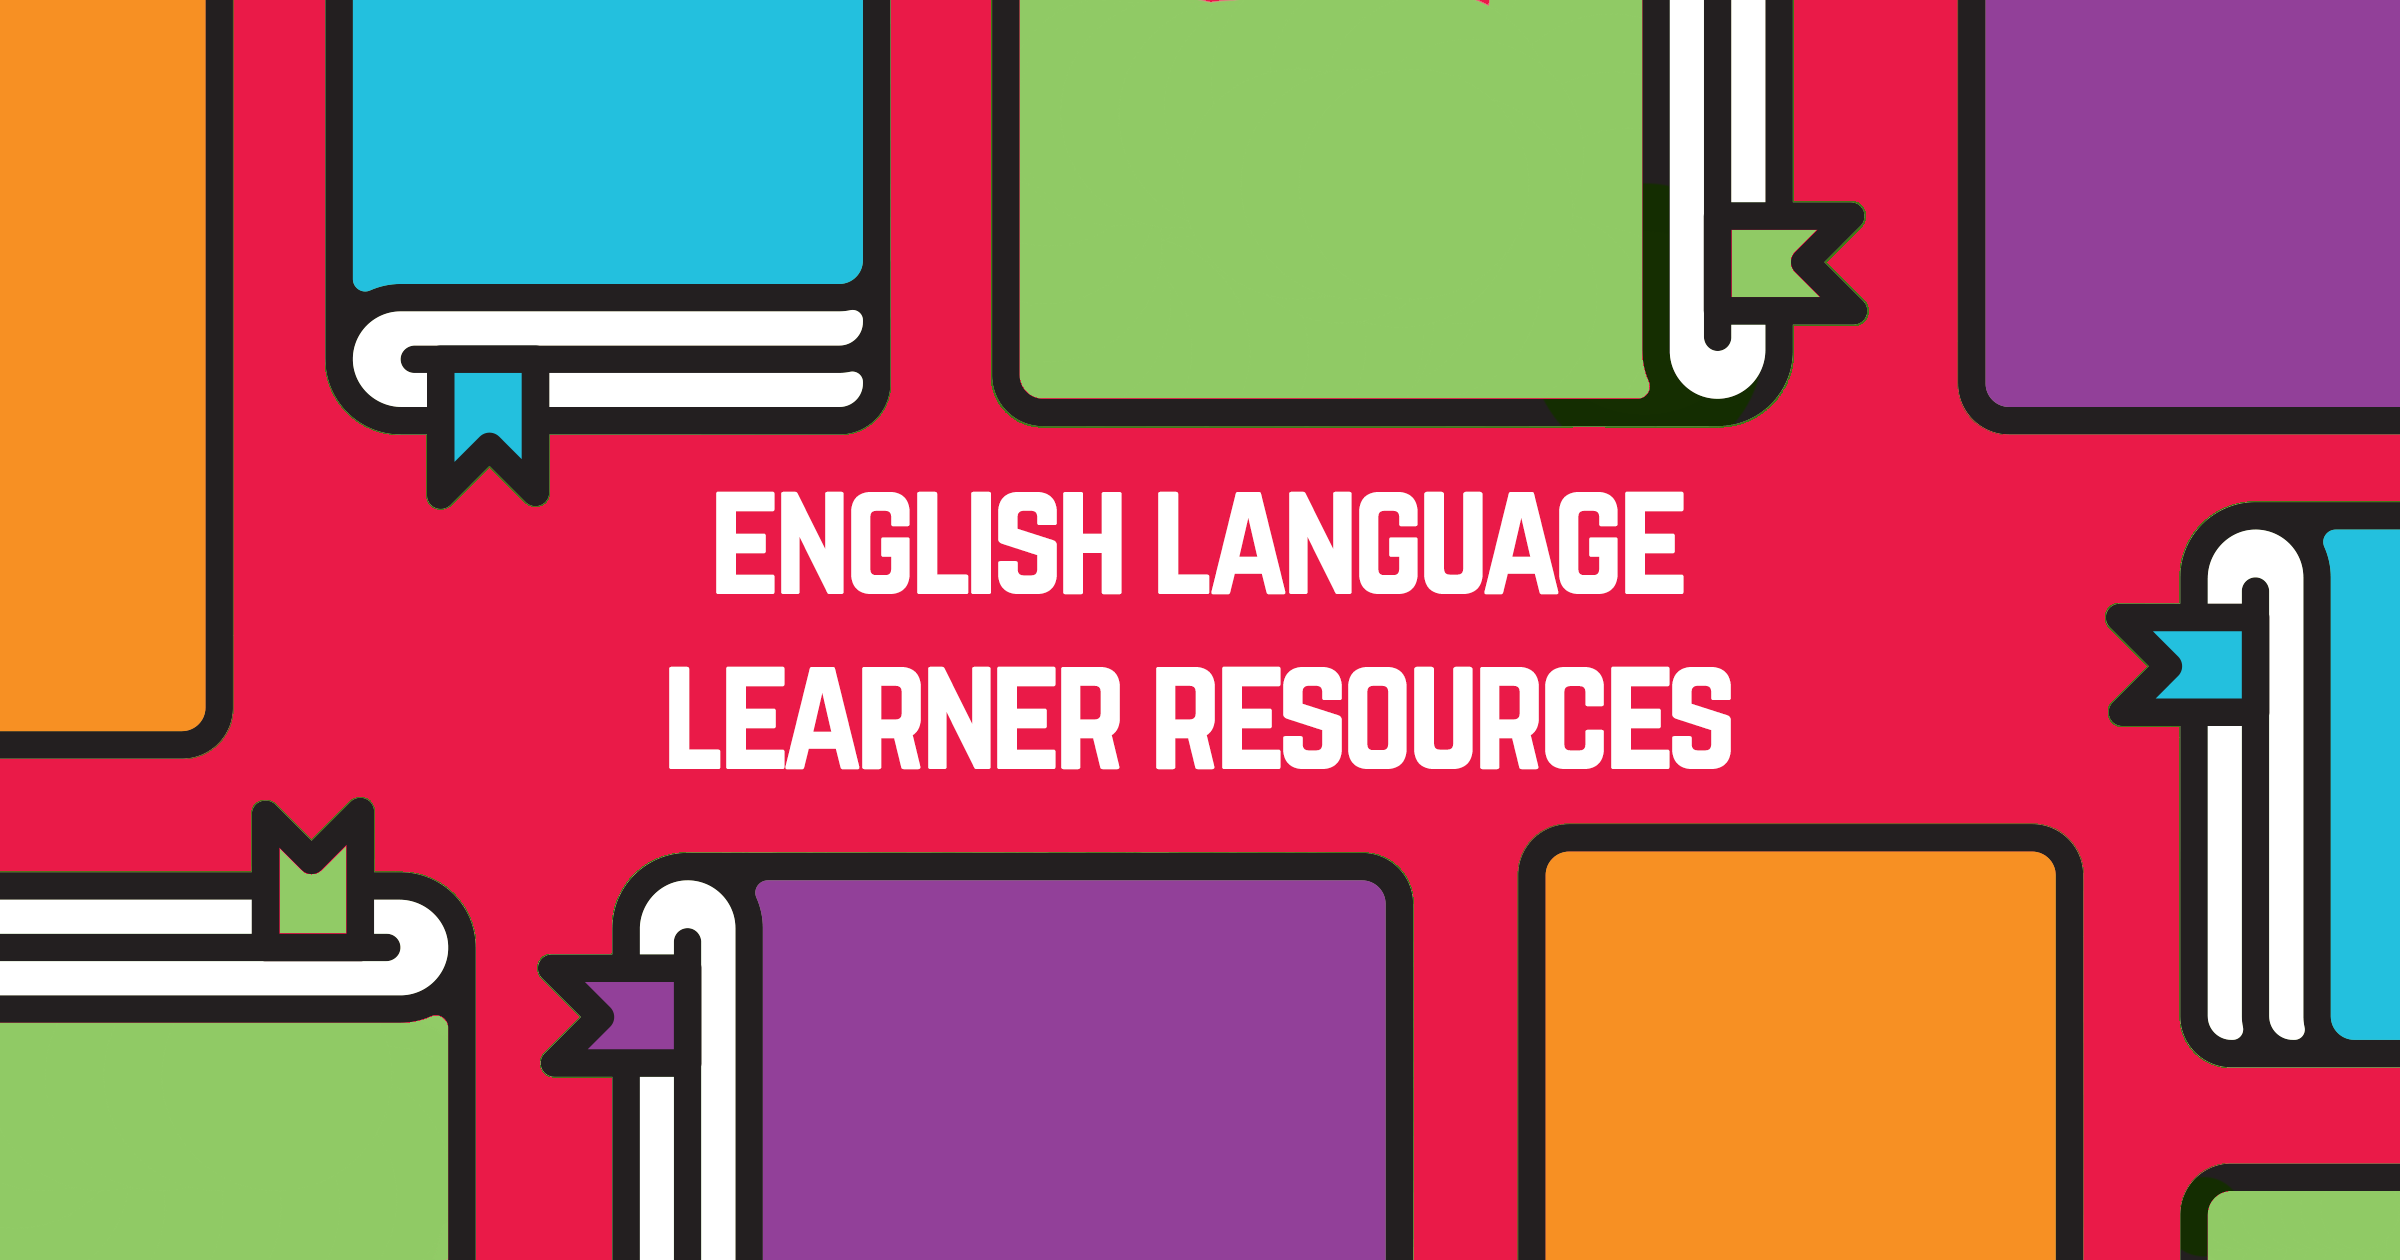 english language learners students resources ell culture ncte tips learner learning hsc skills student writing core years education